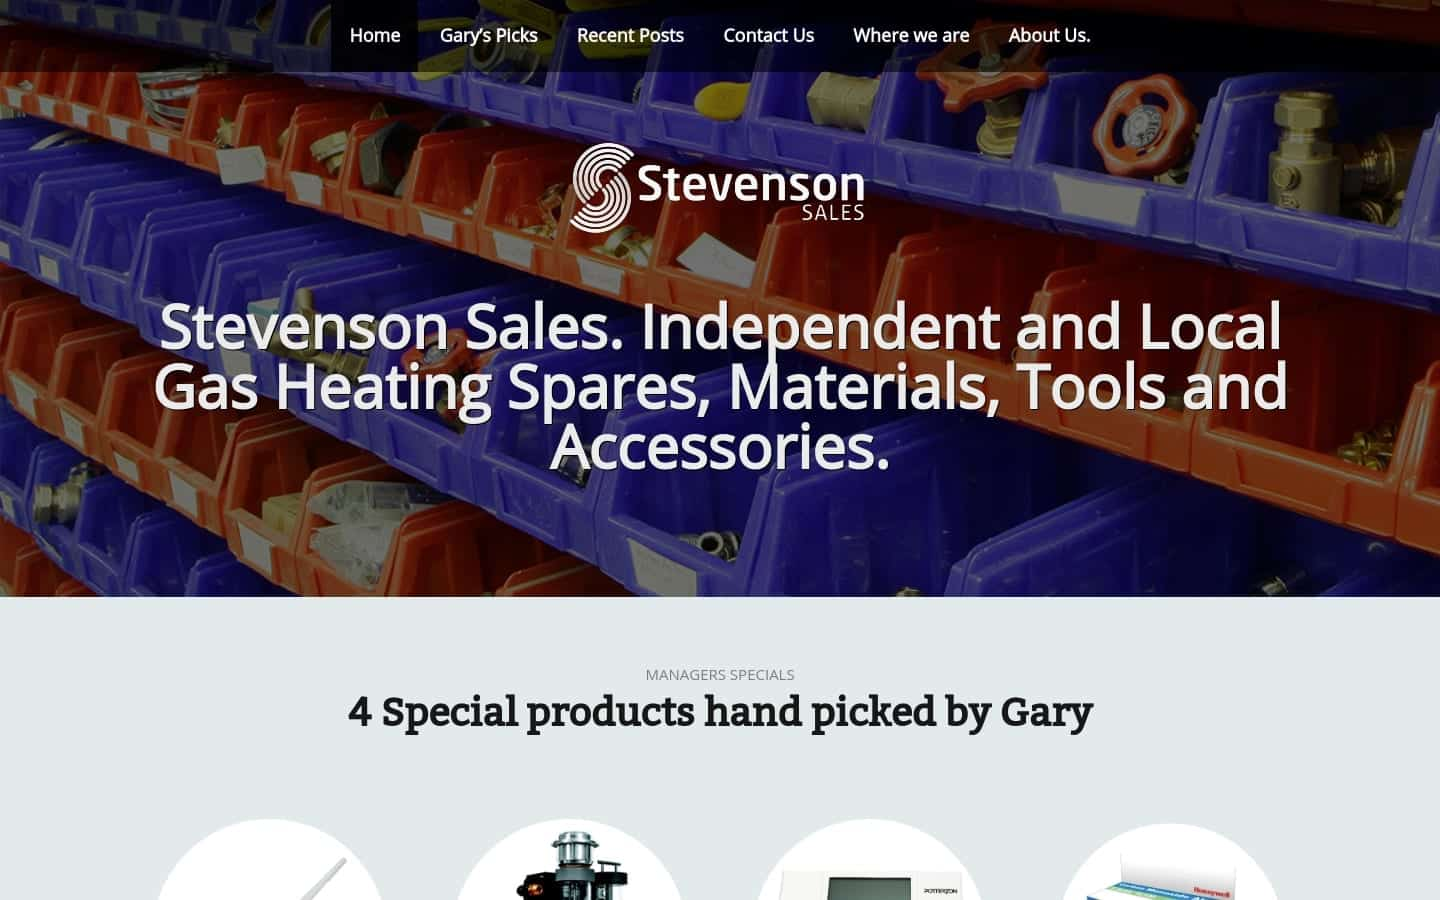 Stevenson Sales desktop website